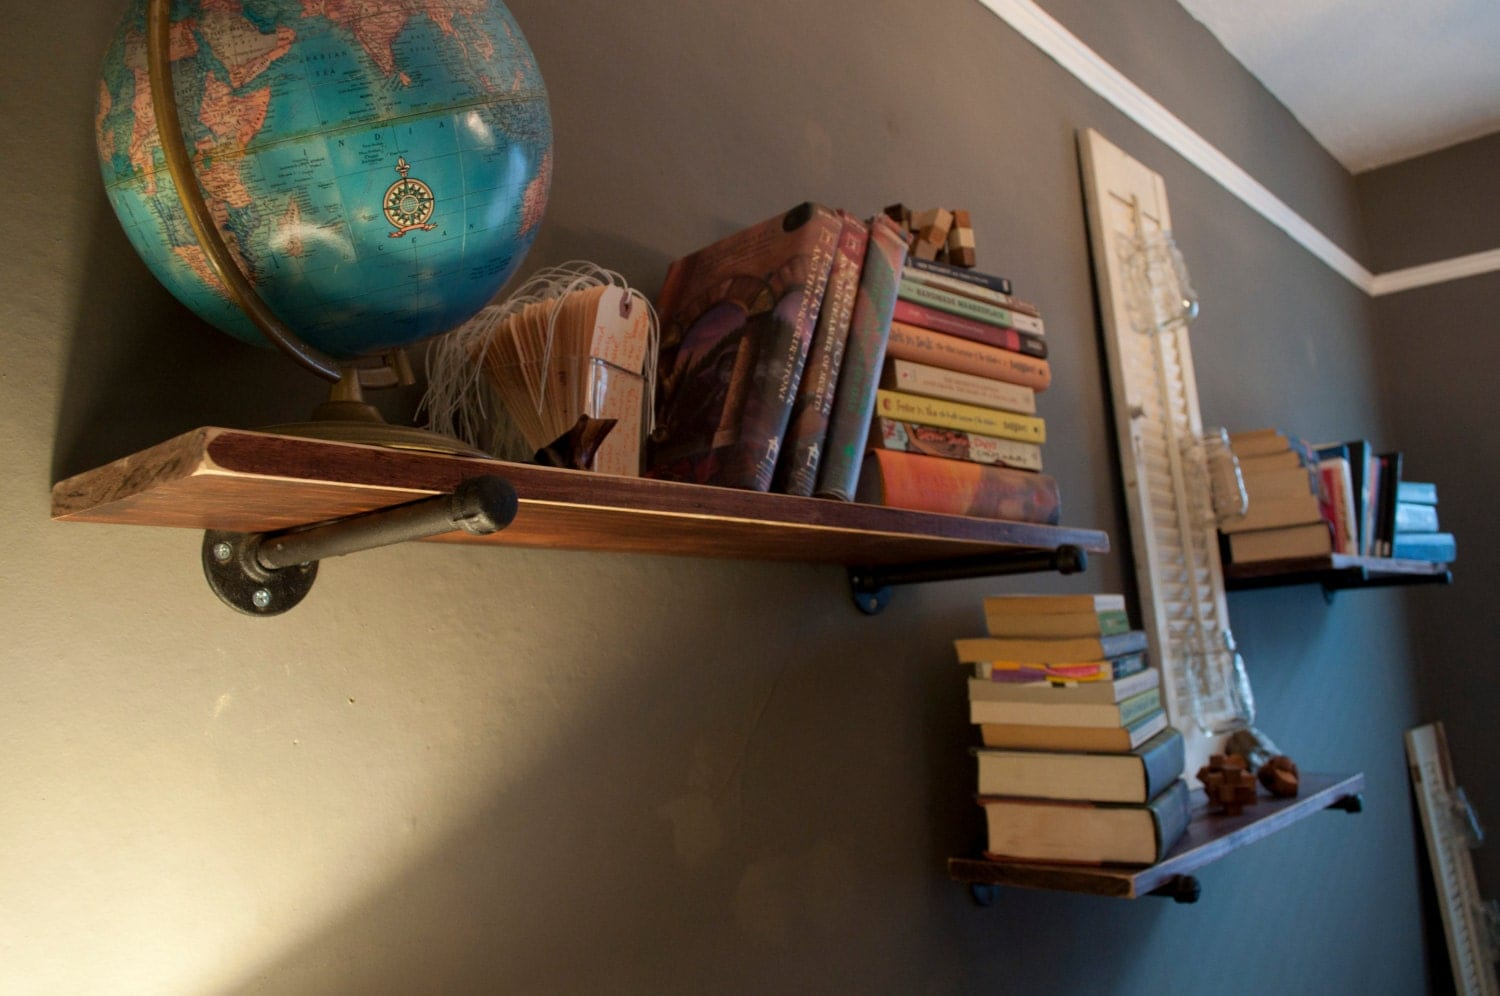 Superb img of Rustic Reclaimed Wood and Steel Pipe Shelves by RelishSav on Etsy with #947837 color and 1500x996 pixels